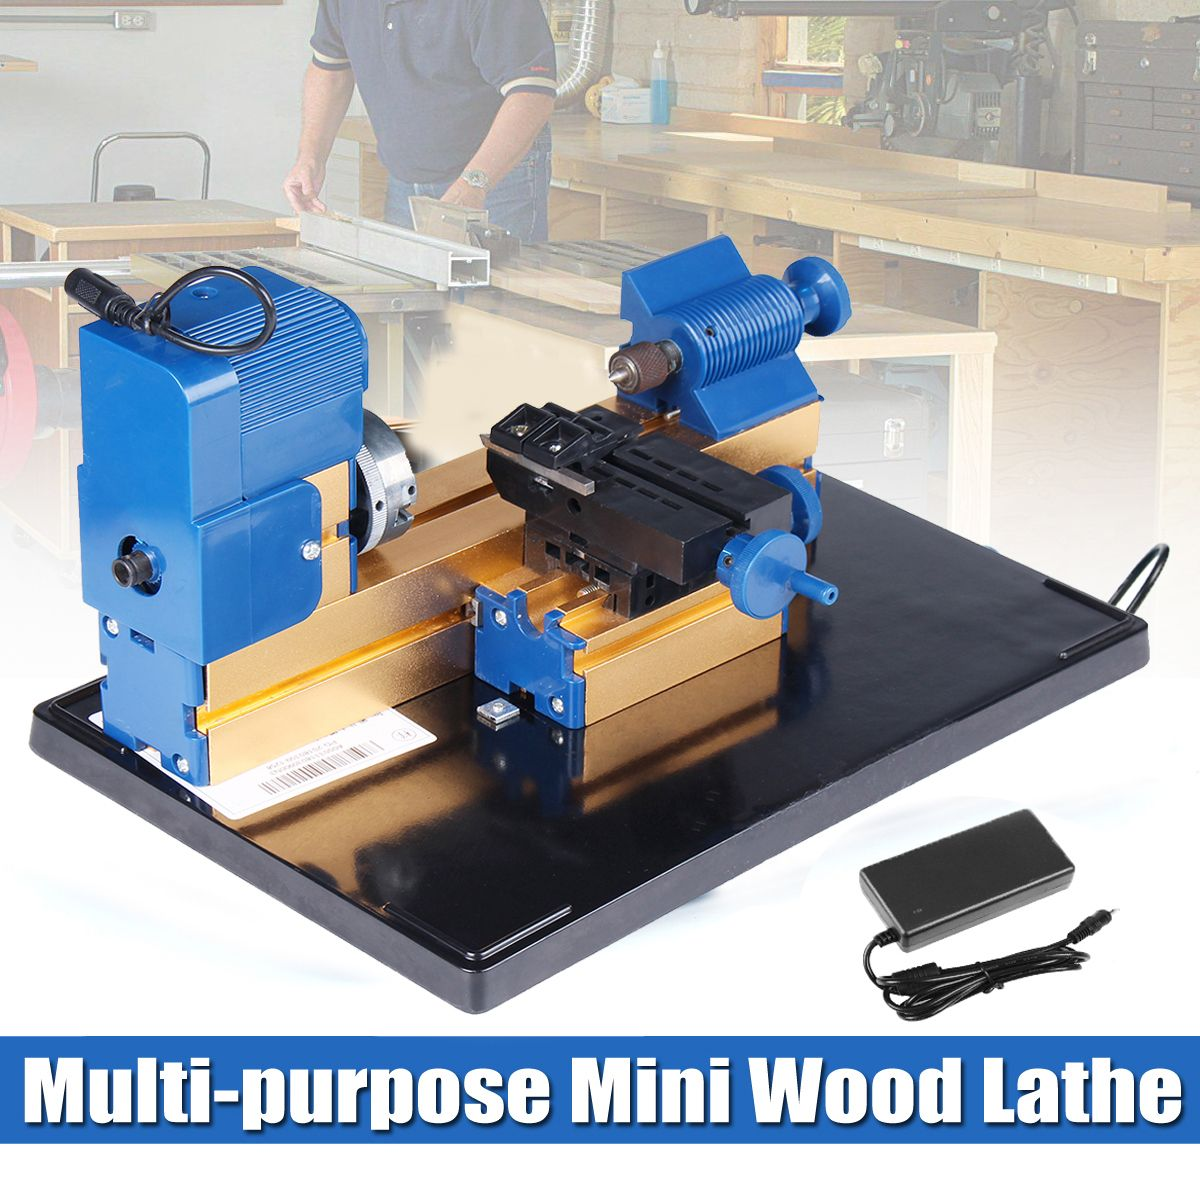 Multifunction Mini Wood Lathe Motorized Jig-saw Bead Grinder Driller 24W DC12V 2A Woodworking Turning Cutting Bead Tool